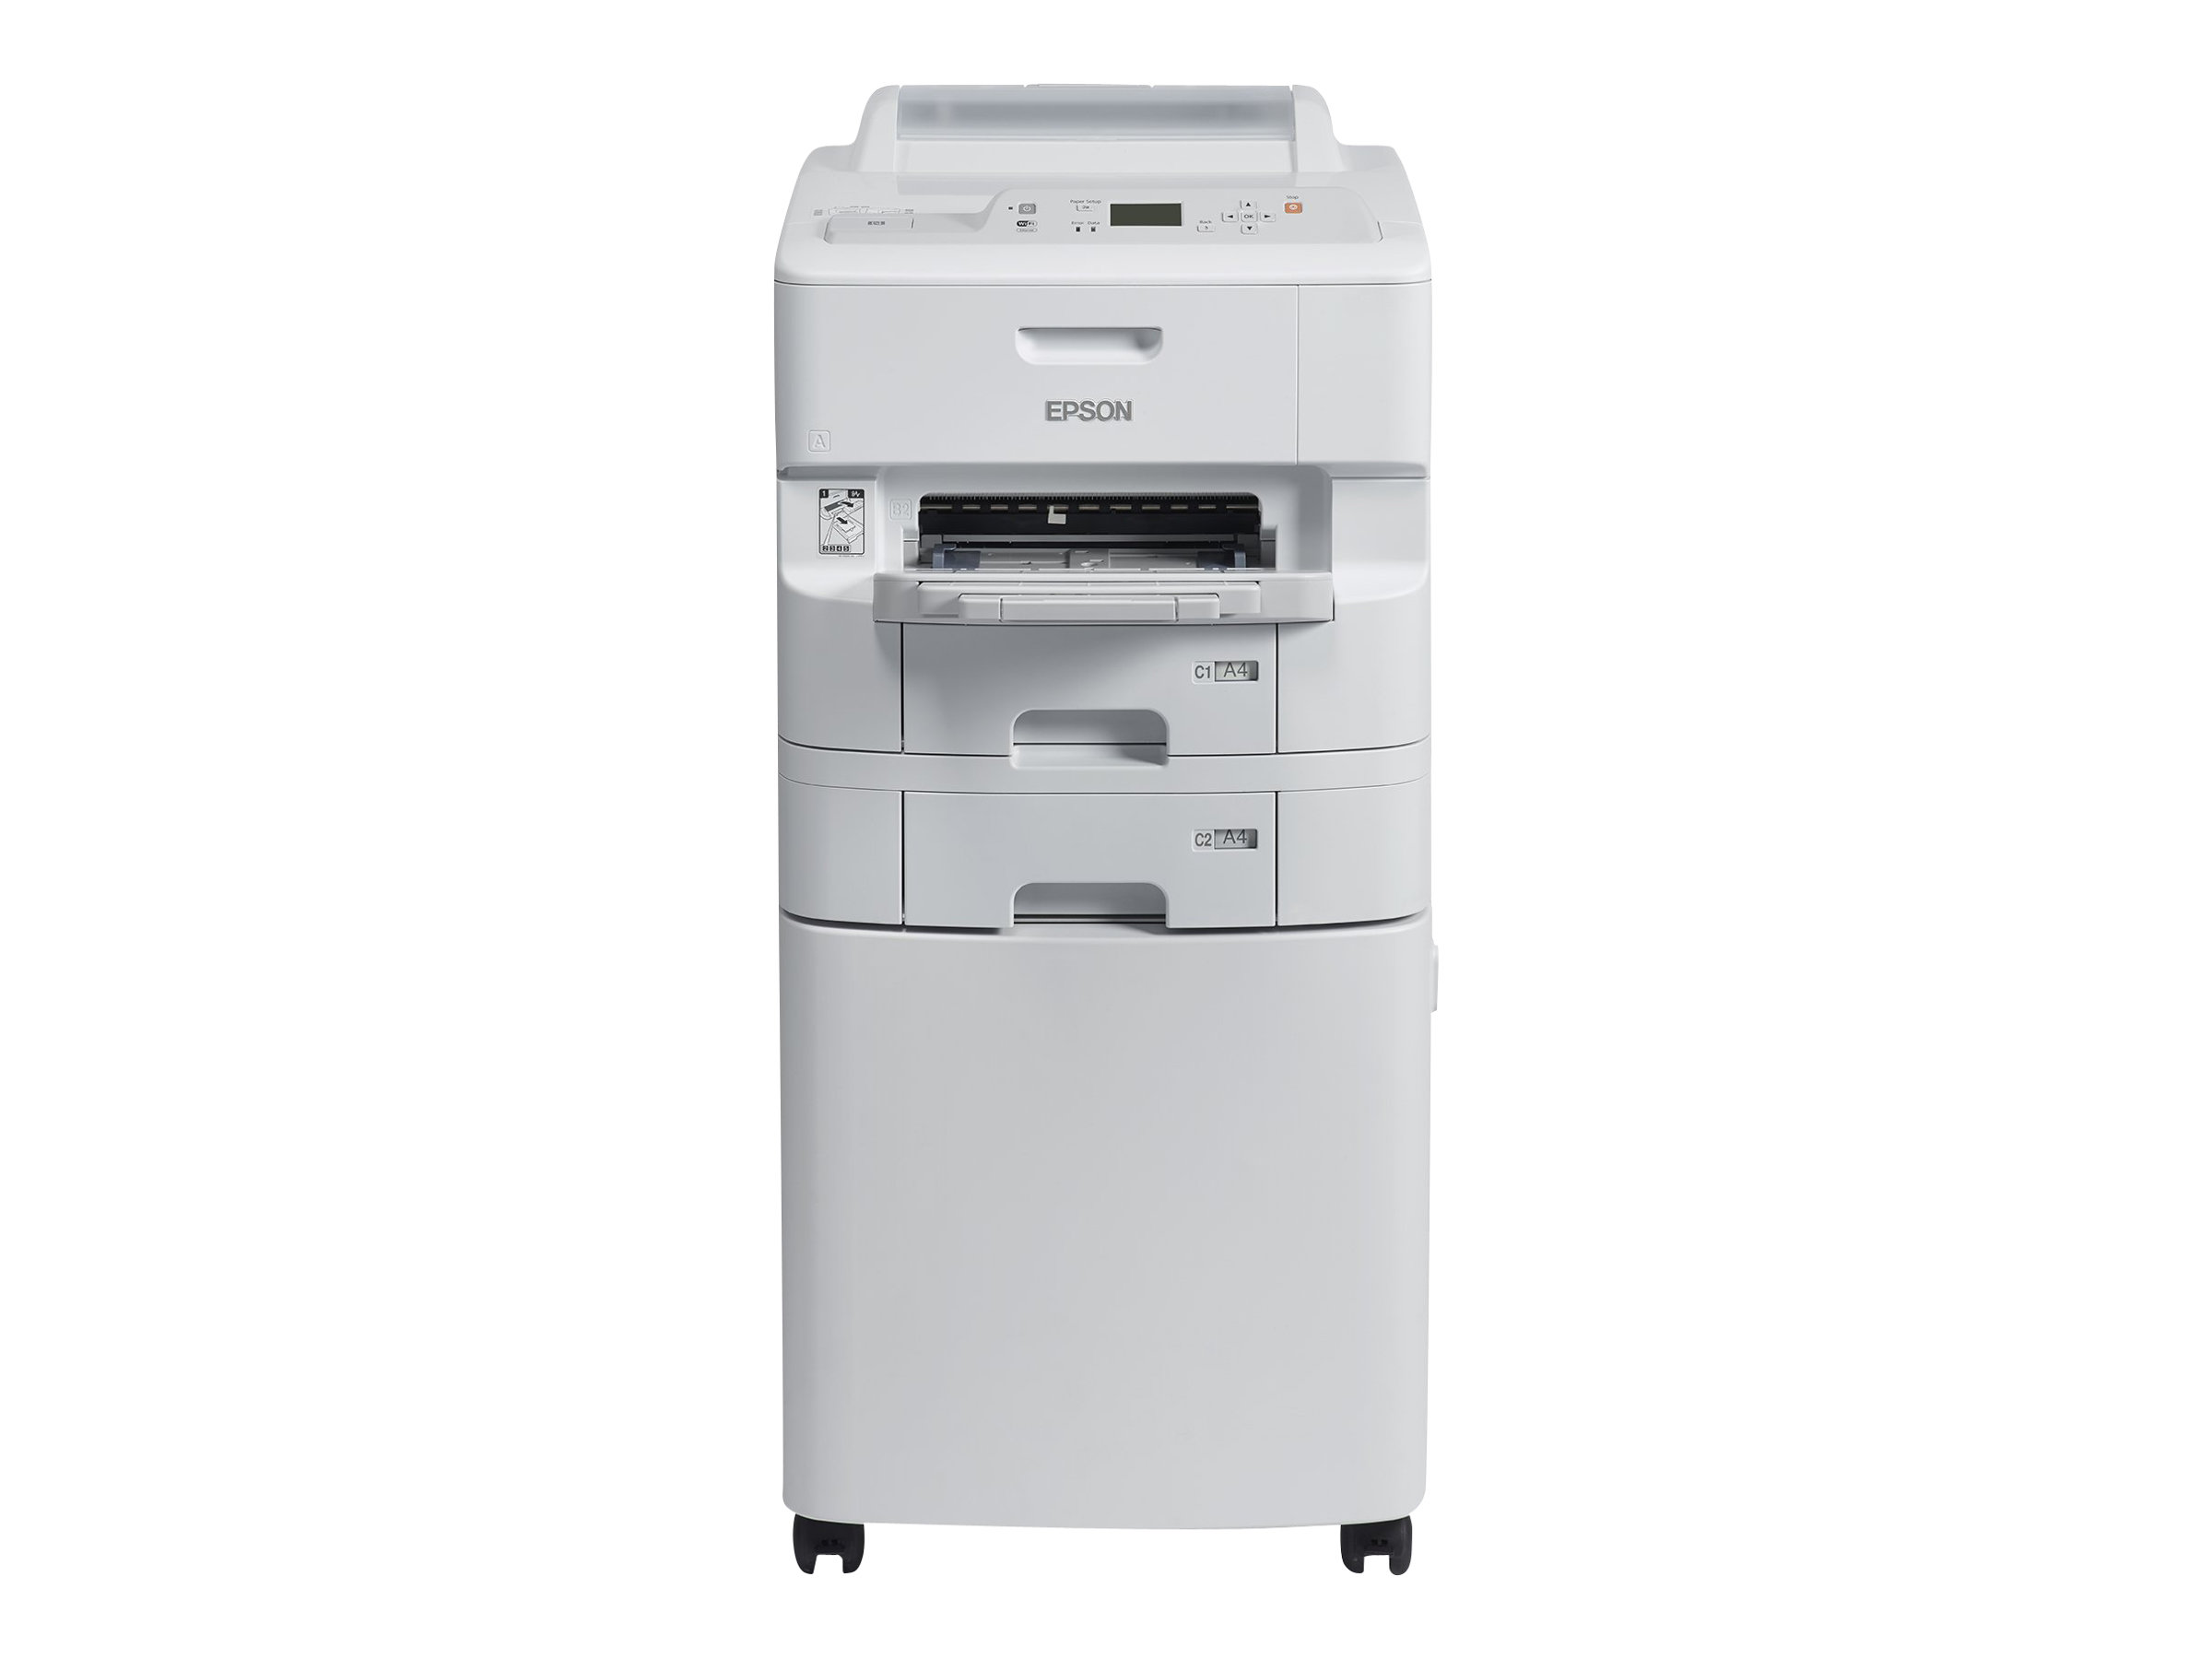 Epson WorkForce Pro WF-6090DTWC - Drucker - Farbe - Duplex - Tintenstrahl - A4/Legal